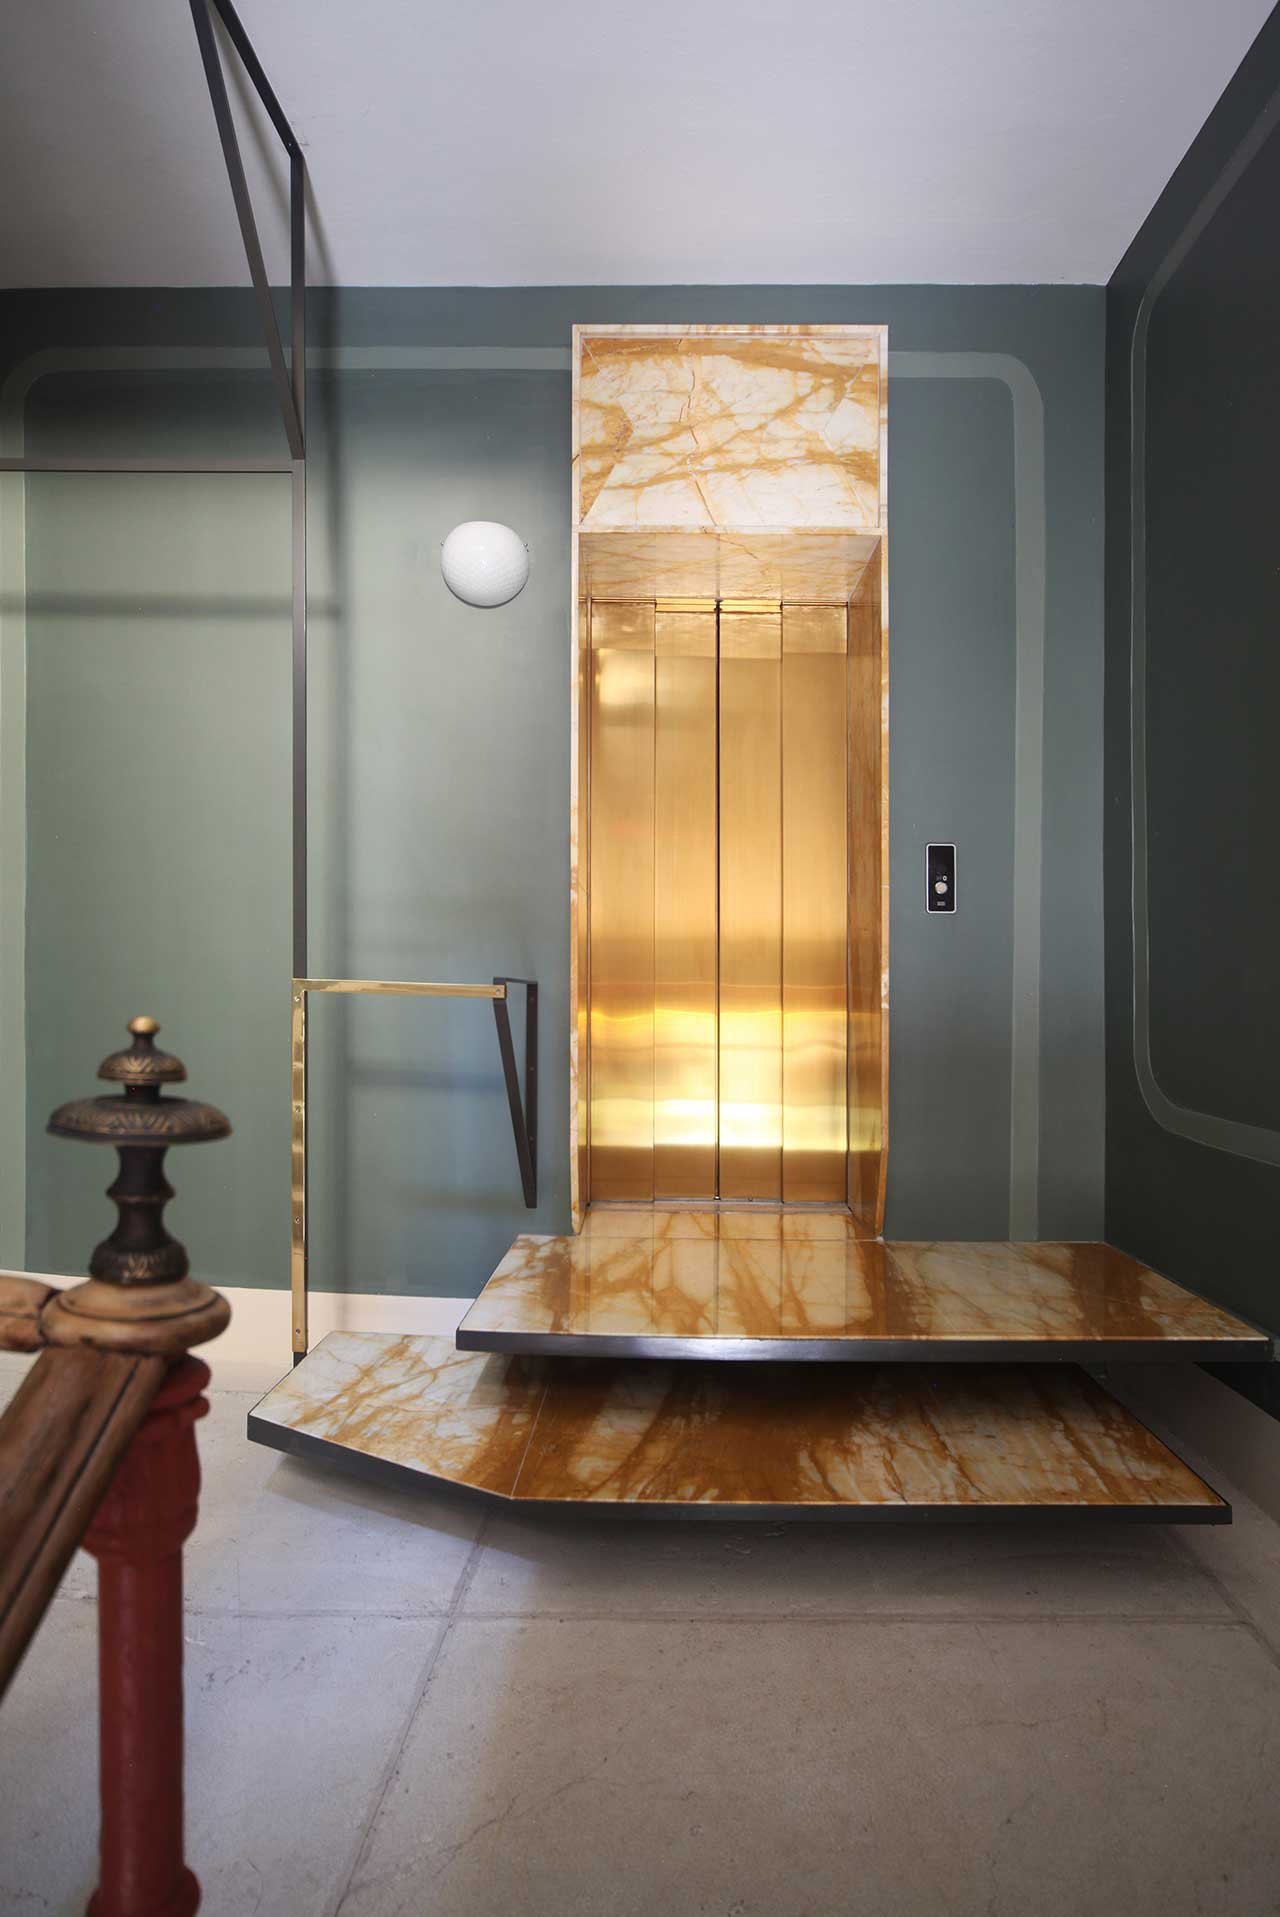 f2_marcante_testa_another_venice_-internal_renovation_of_historic_building_in_venice_italy_yatzer